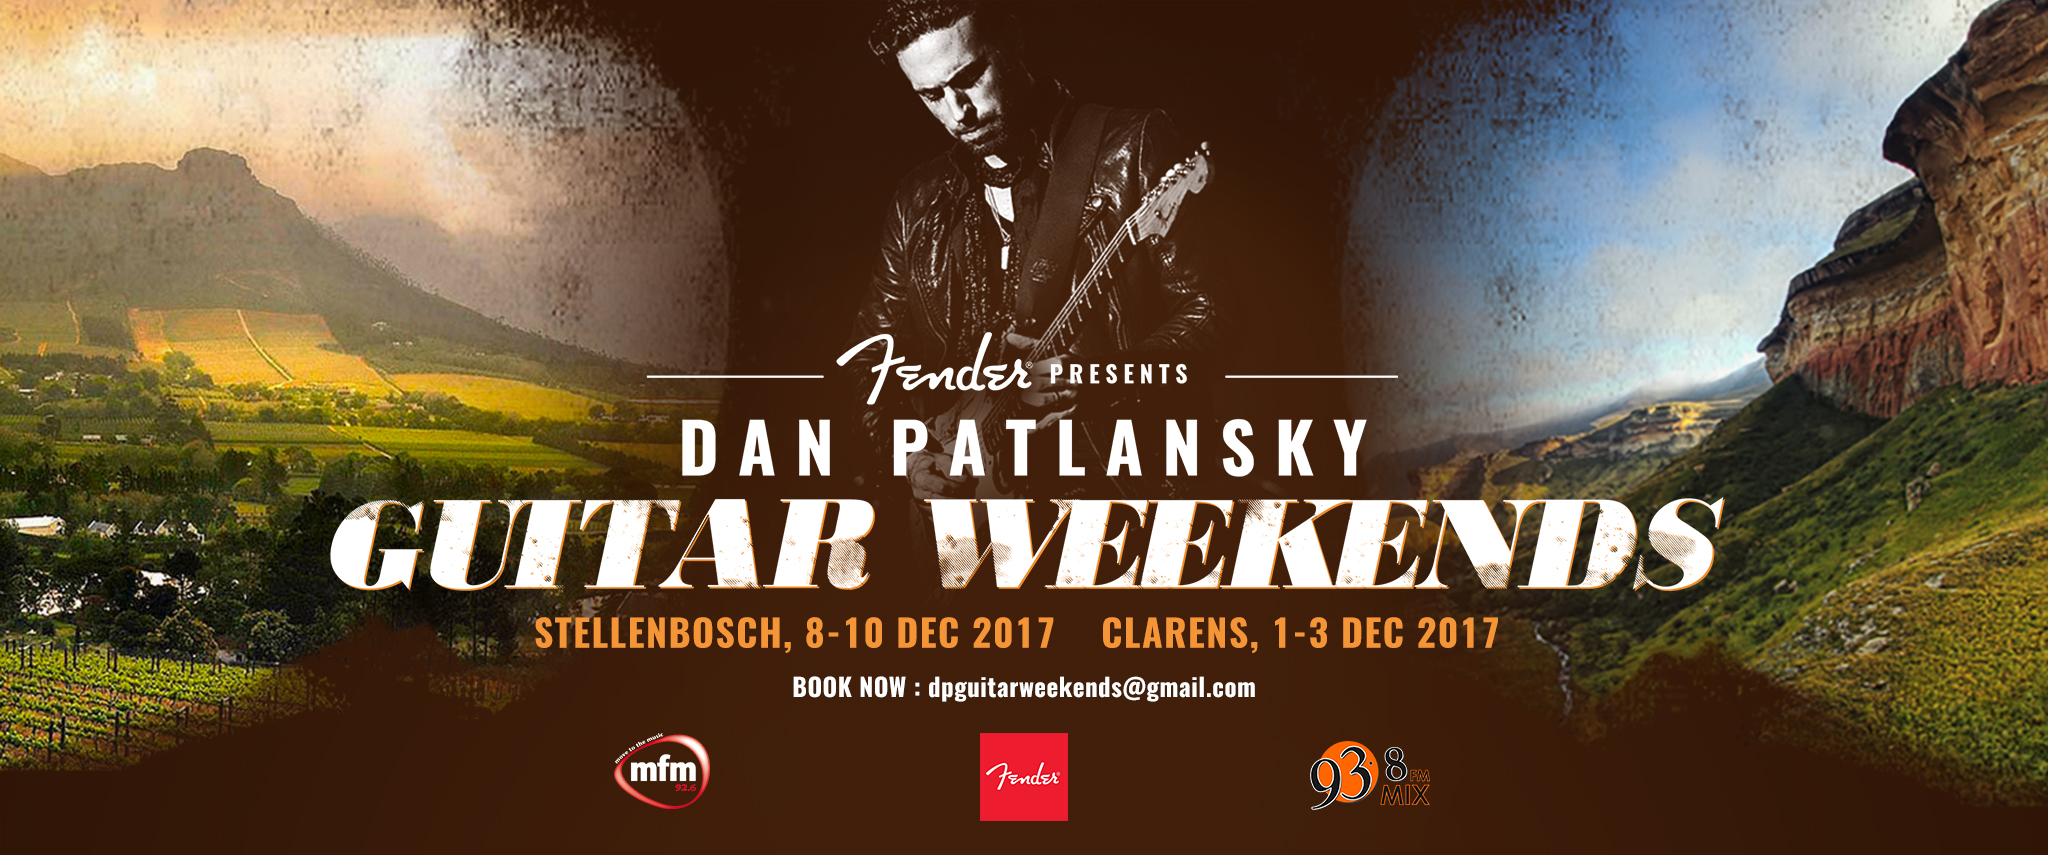 Dan Patlansky Guitar Weekends coming to Stellenbosch